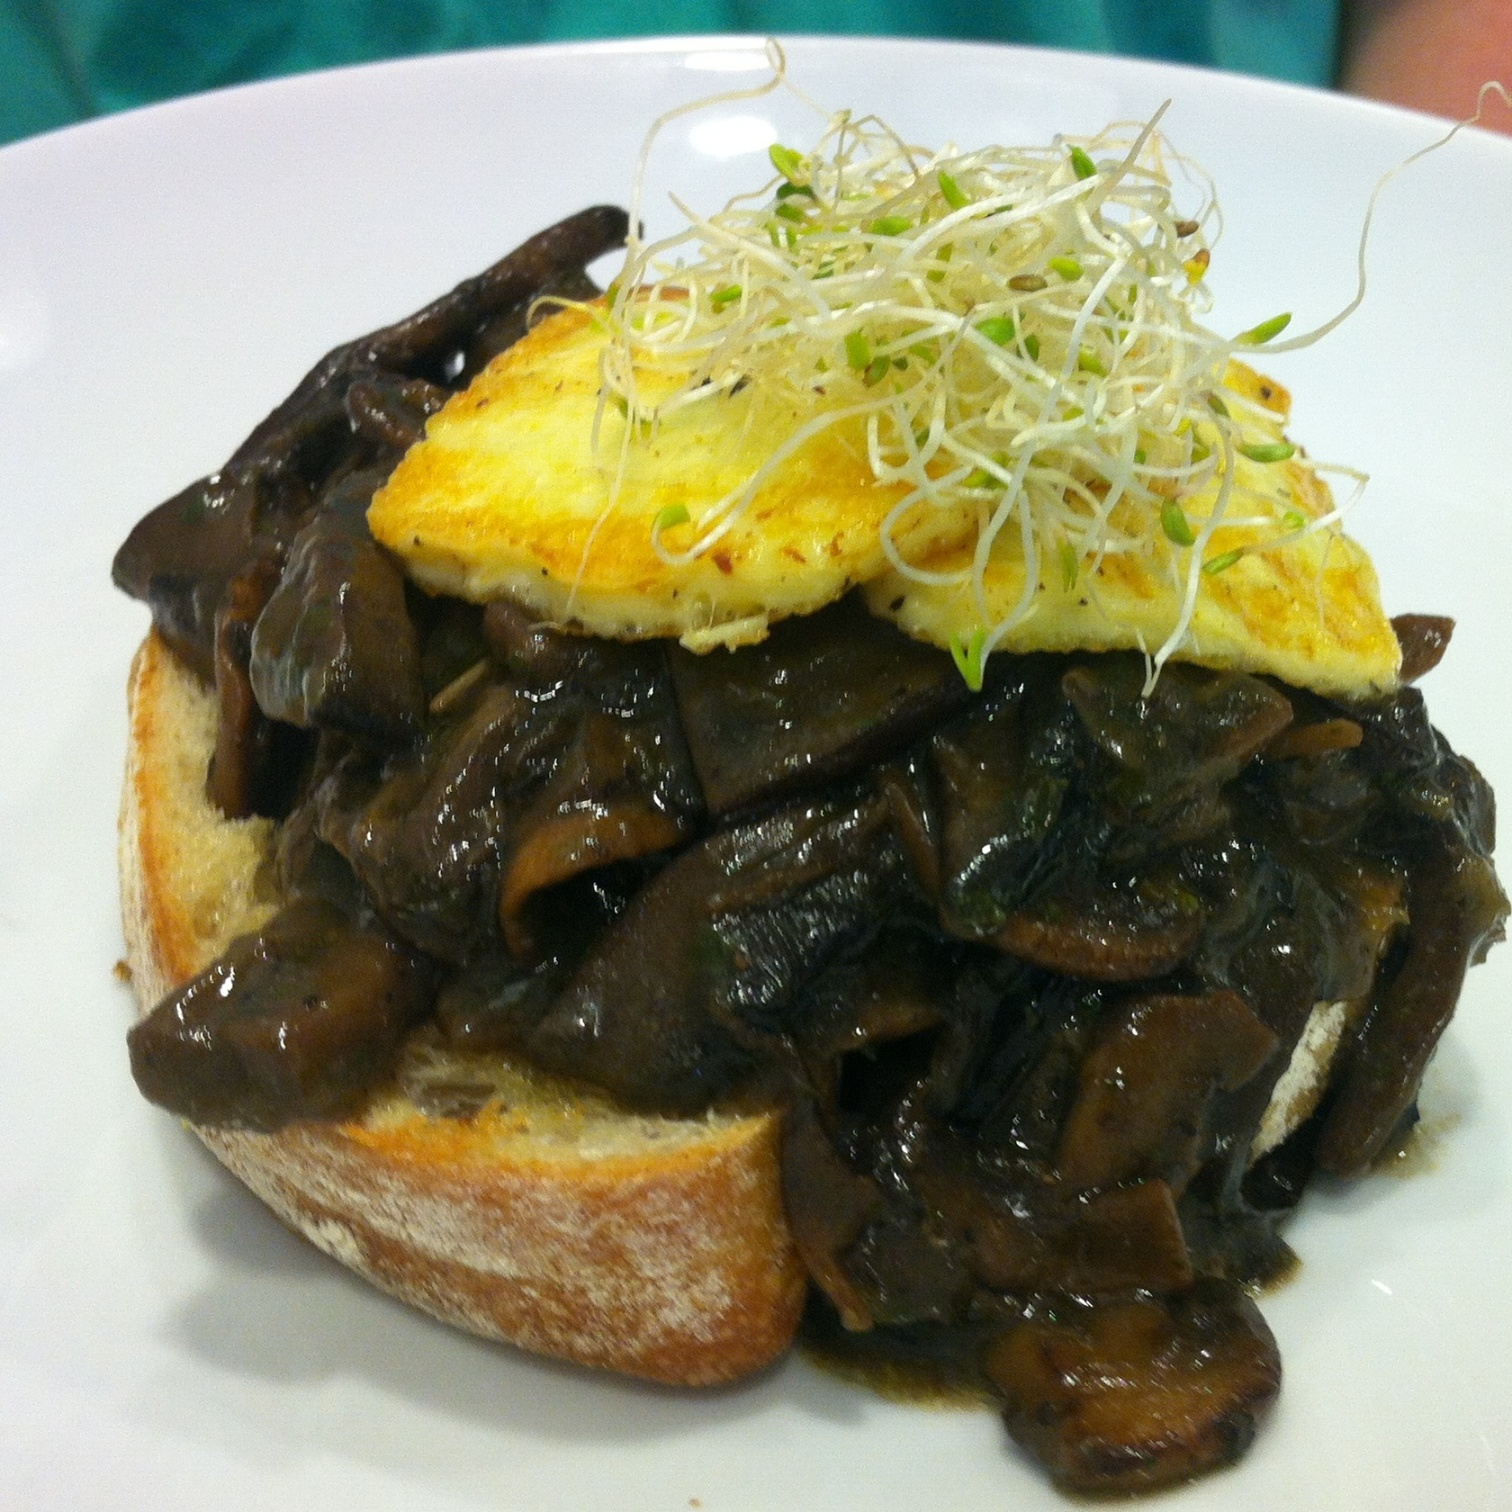 Mushrooms and Haloumi on Smoked Garlic Toast